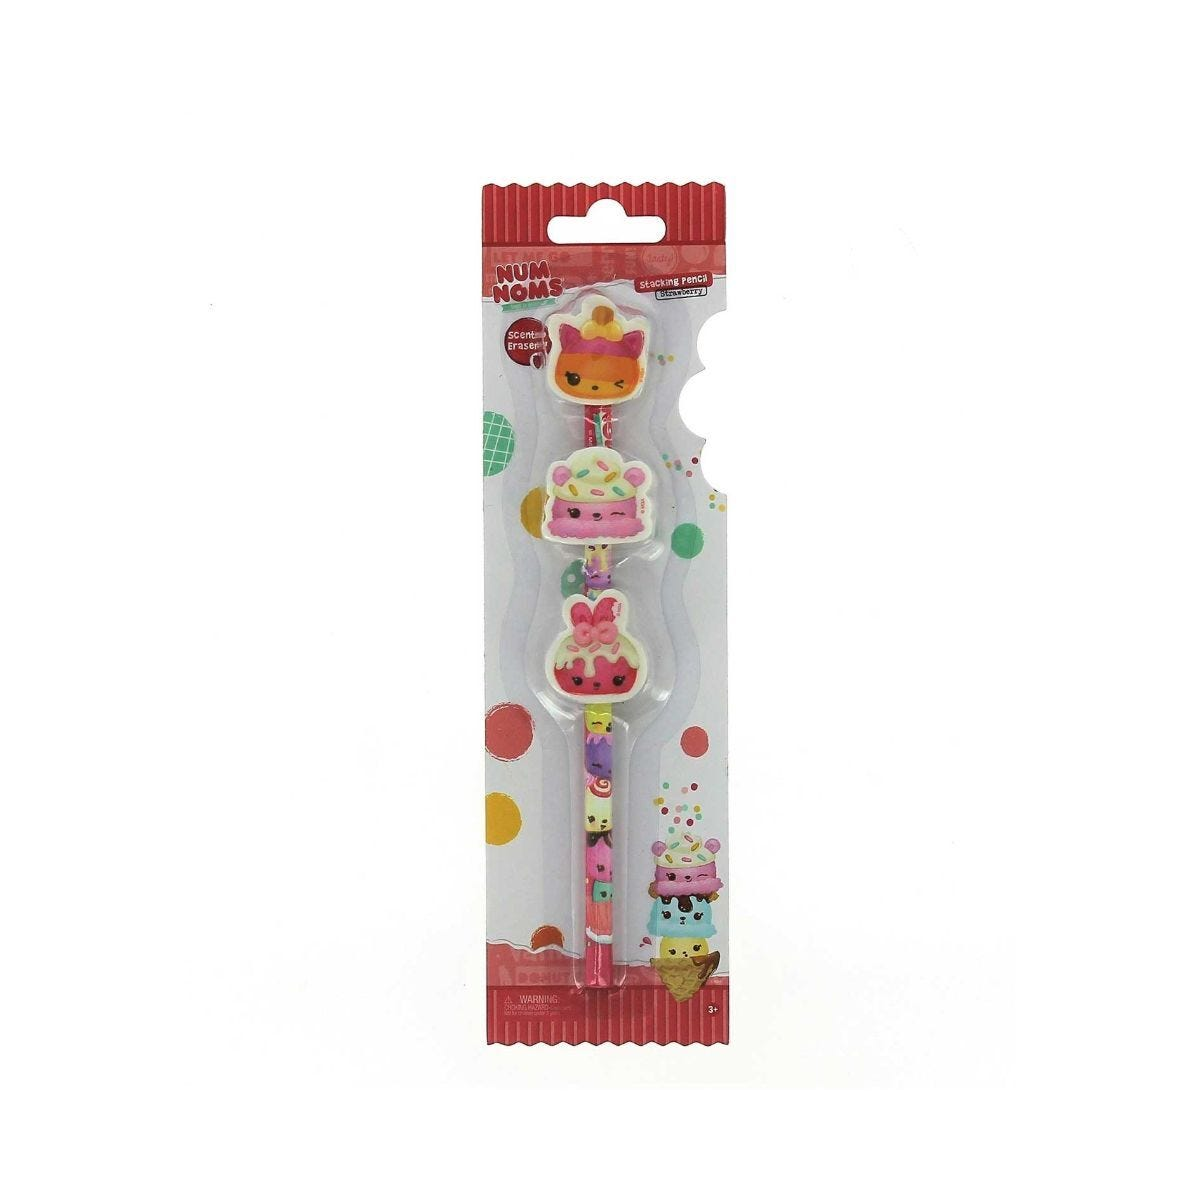 Num Noms Stacking Pencil with Scented Erasers